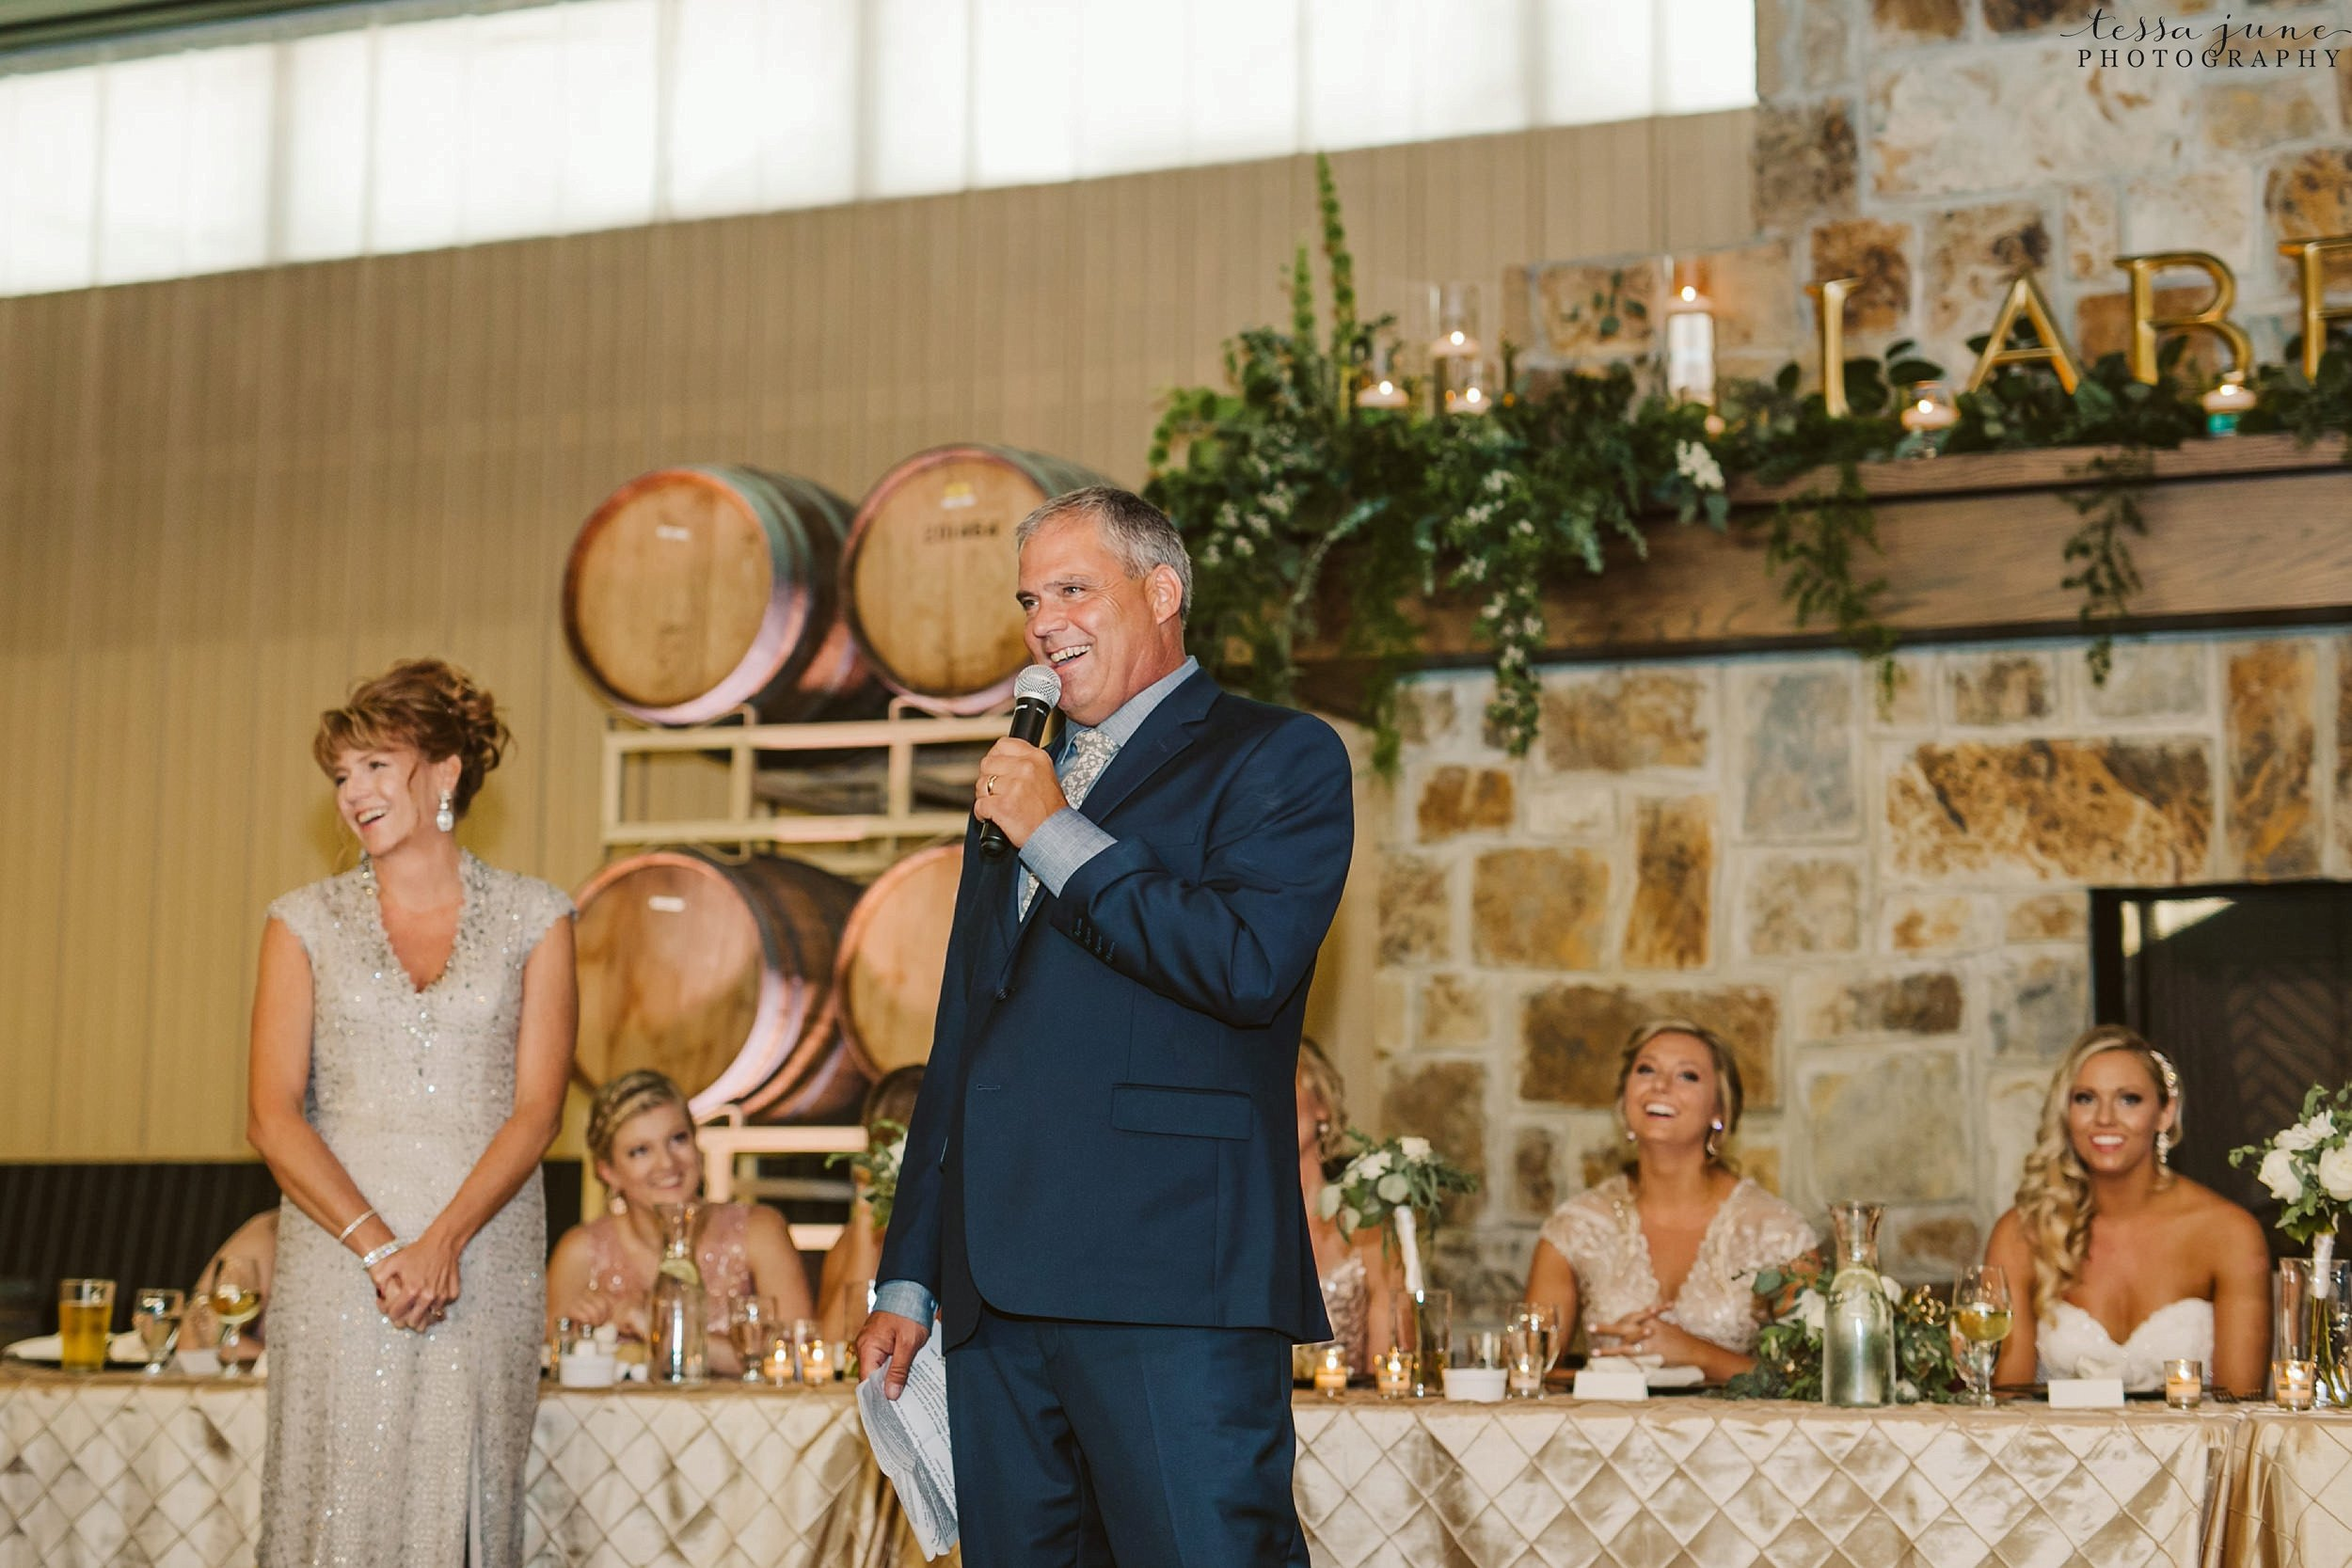 carlos-creek-winery-wedding-alexandria-minnesota-glam-elegant-floral-120.jpg